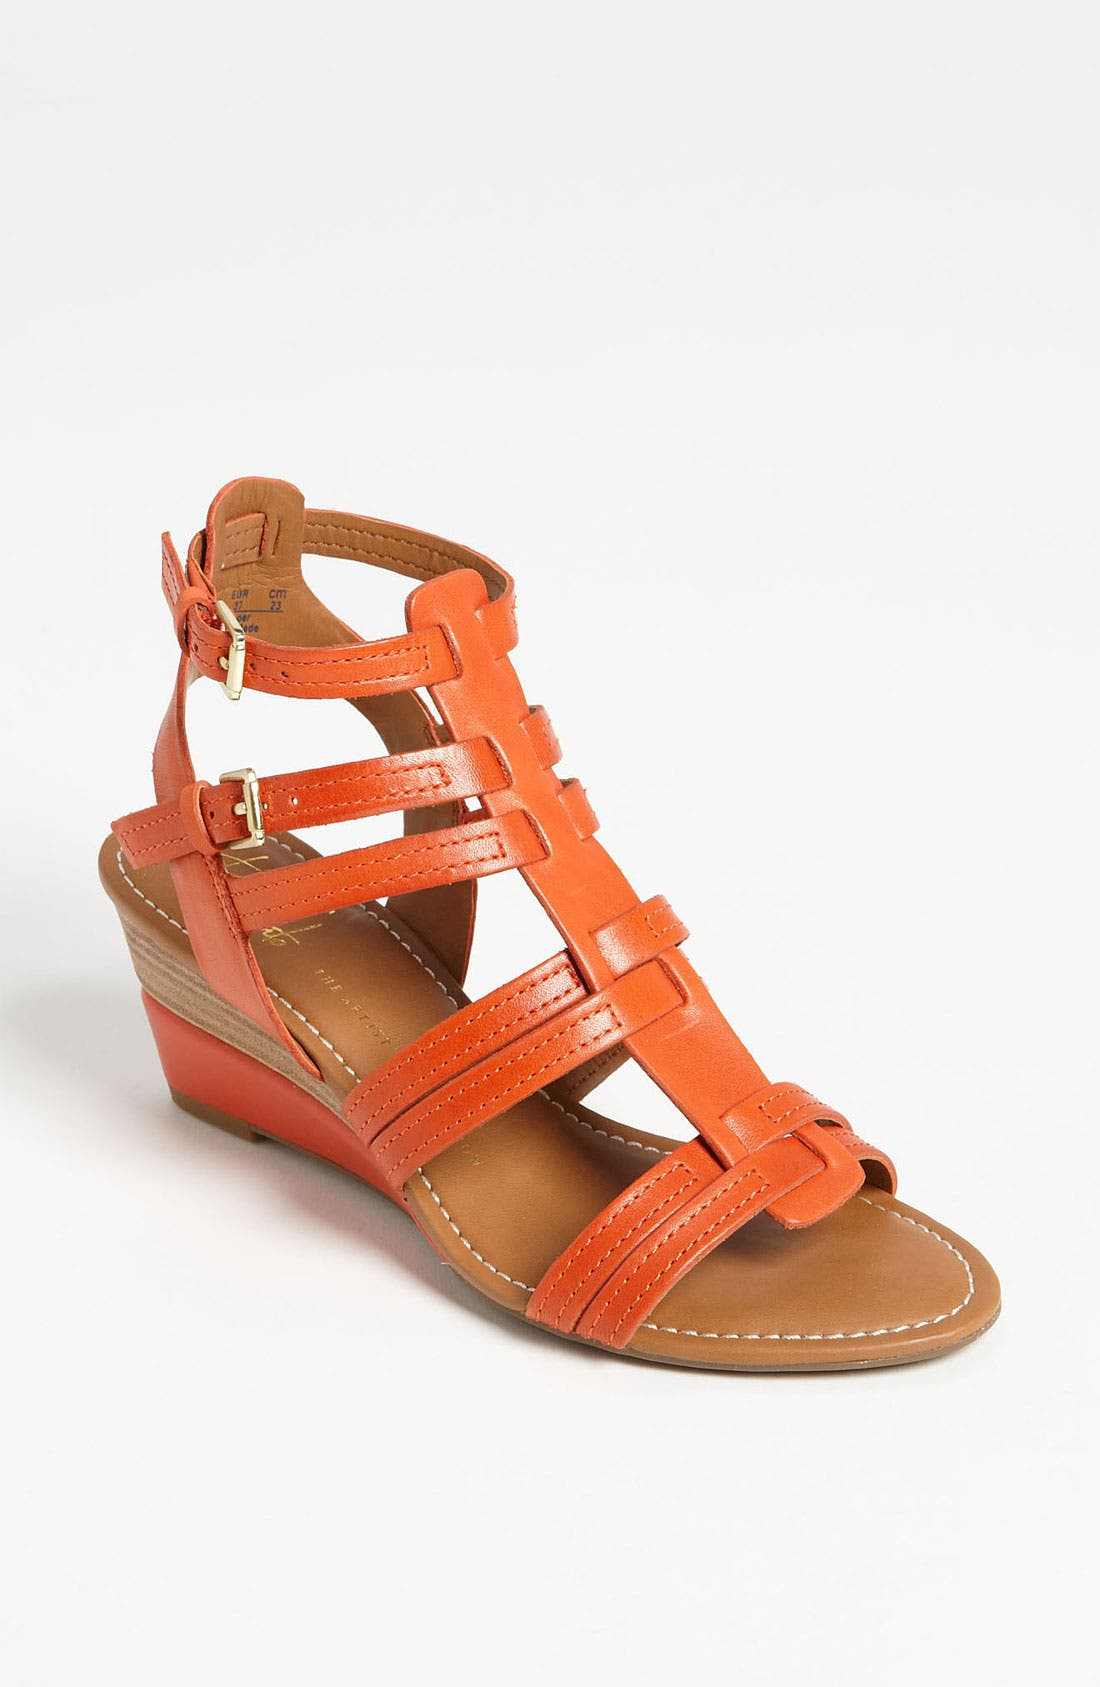 Alternate Image 1 Selected - Franco Sarto 'Era' Wedge Sandal